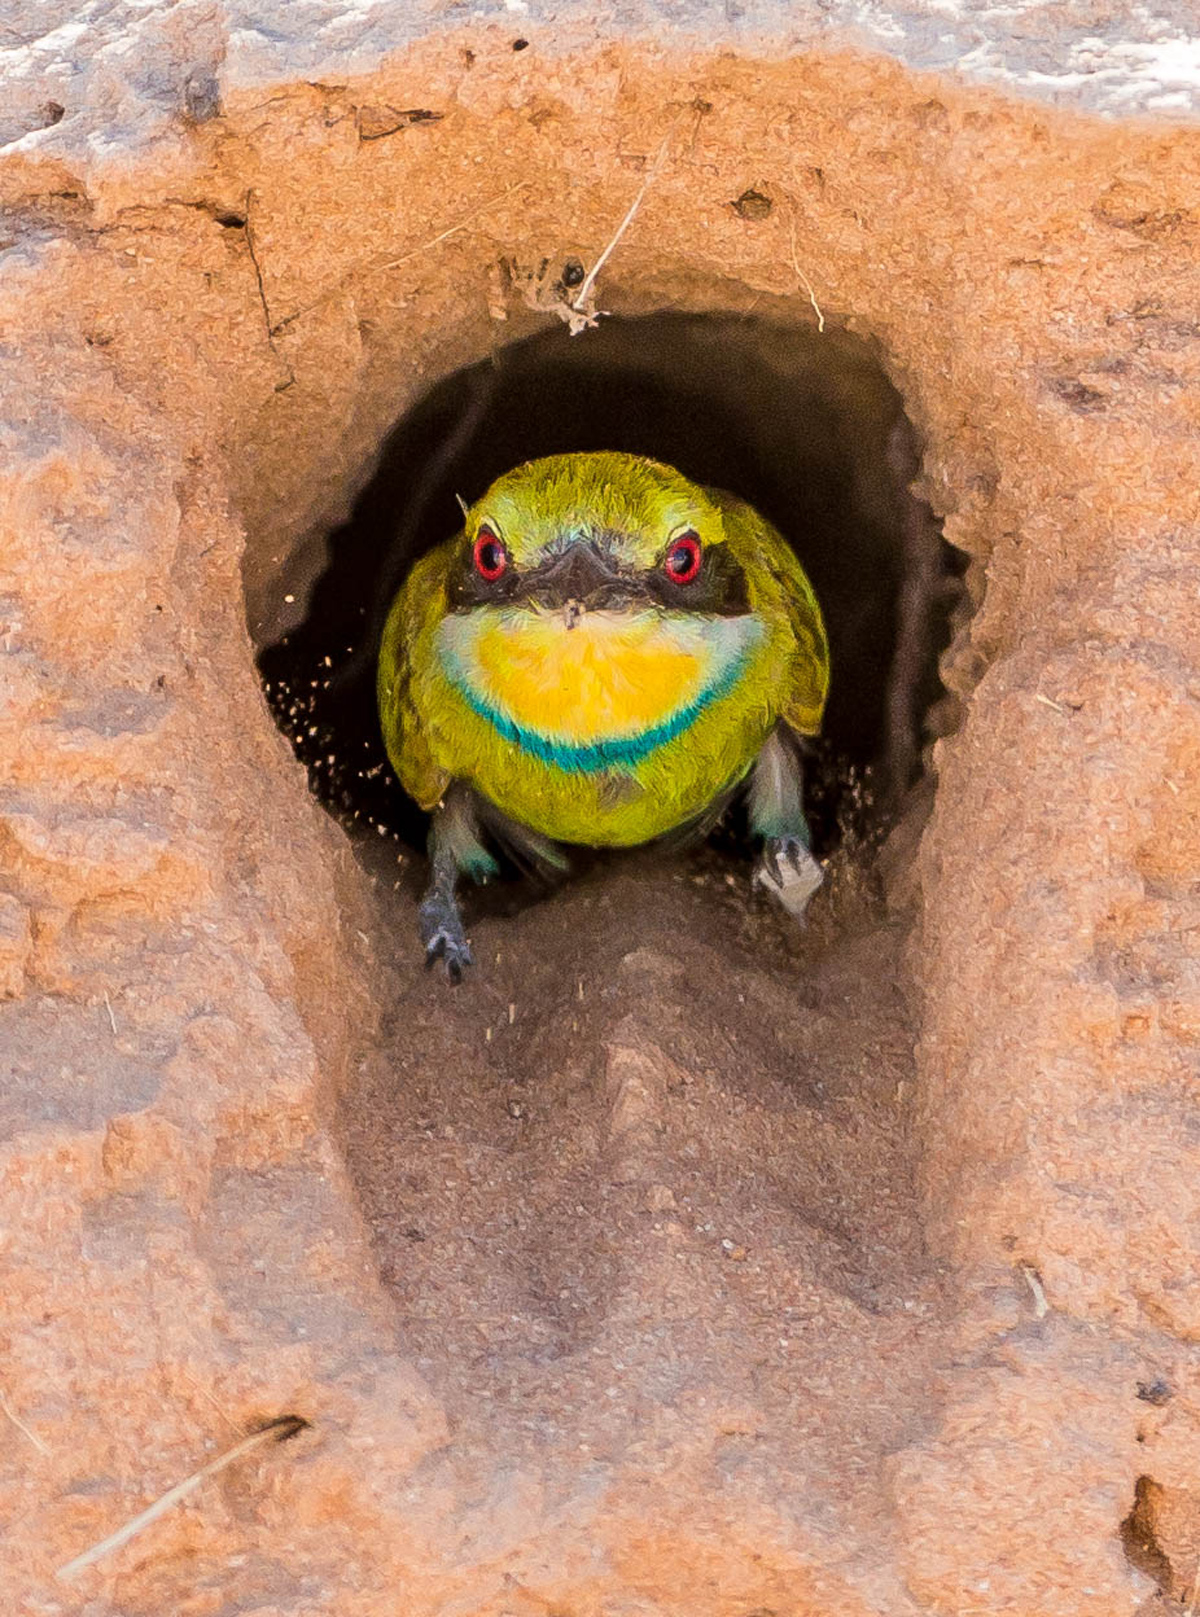 A swallow-tailed bee-eater exits the burrow after feeding its young in Kgalagadi Transfrontier Park, South Africa © Willem Landman